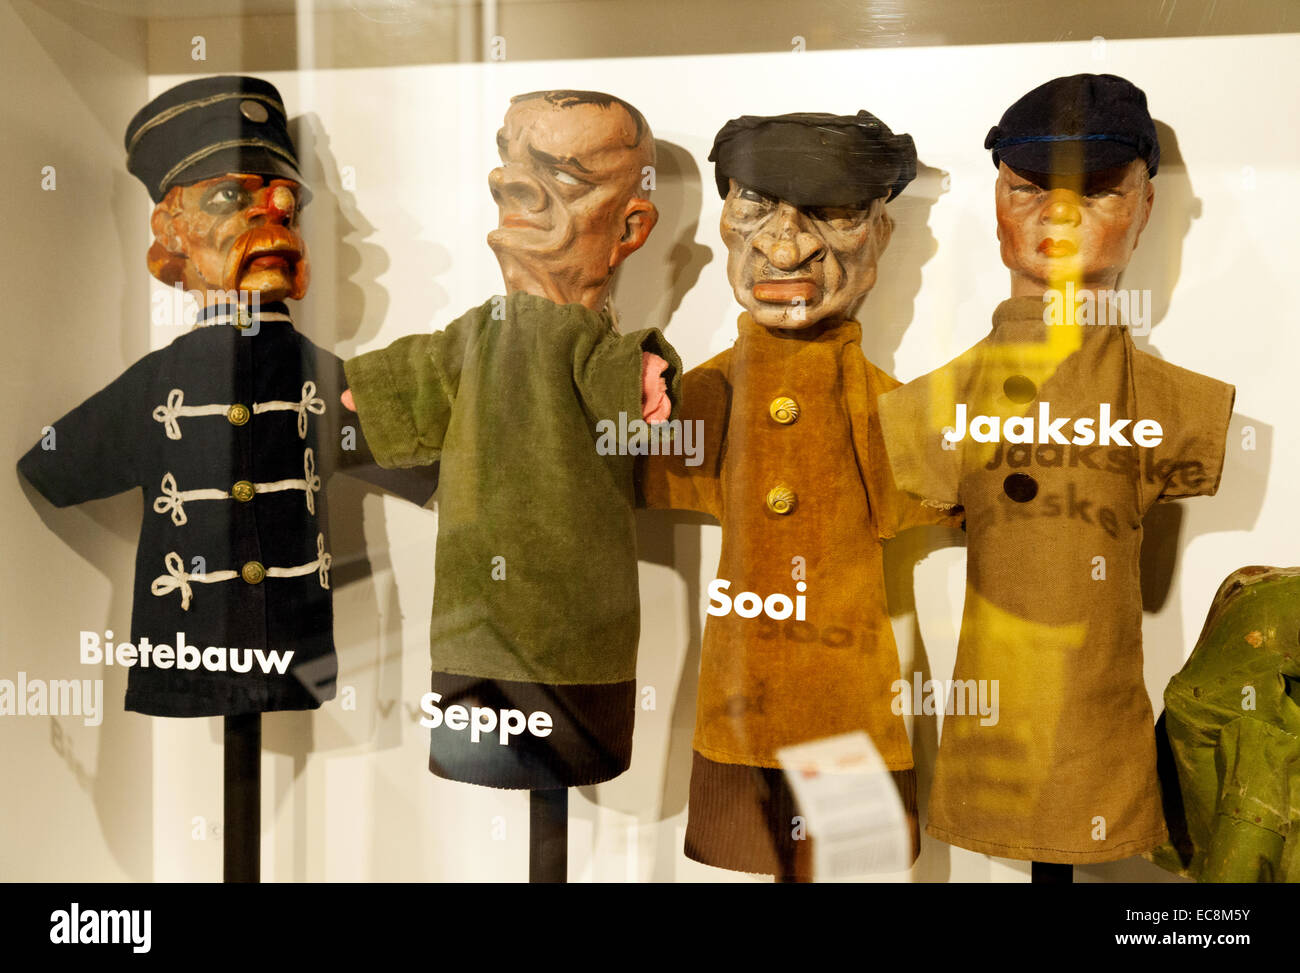 Old wooden Belgian / Flemish puppets, The Folklore Museum, Bruges Belgium - Stock Image